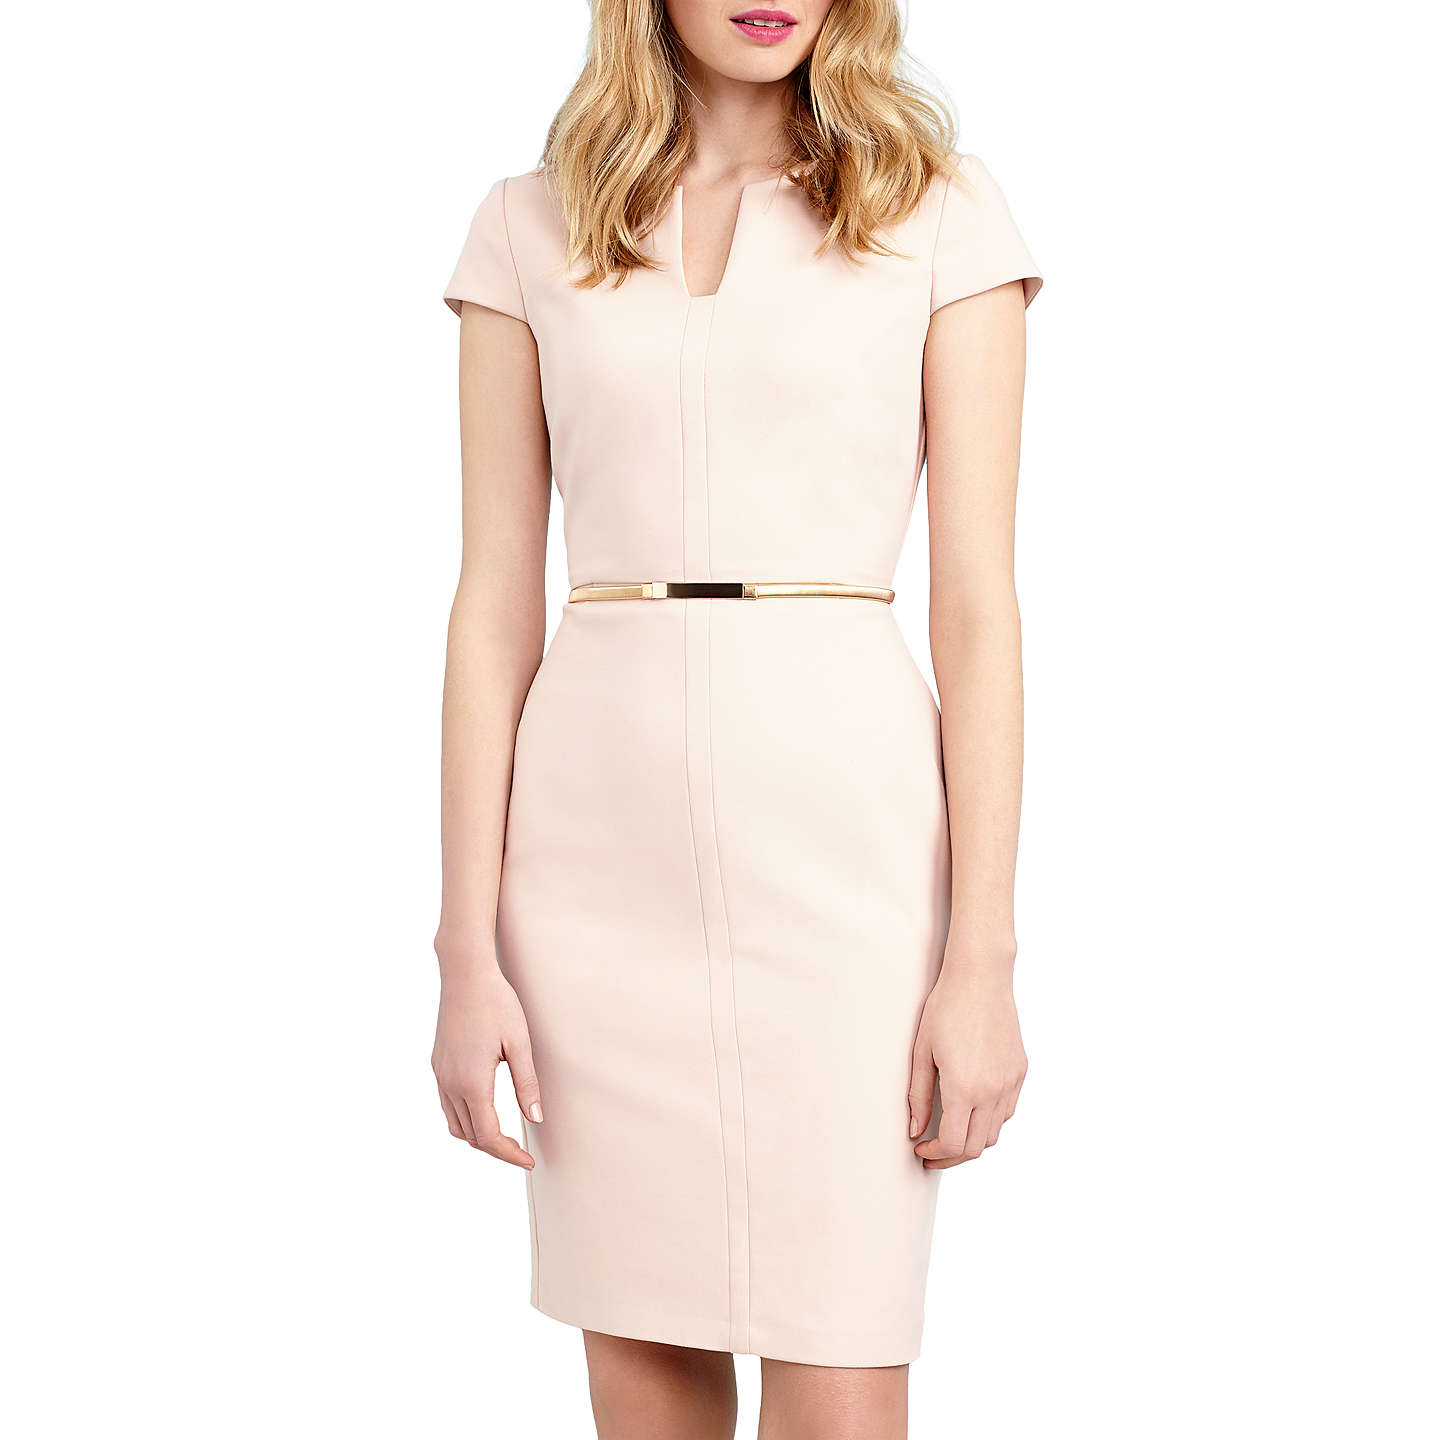 BuyPhase Eight Morgan Belted Dress, Cameo, 14 Online at johnlewis.com